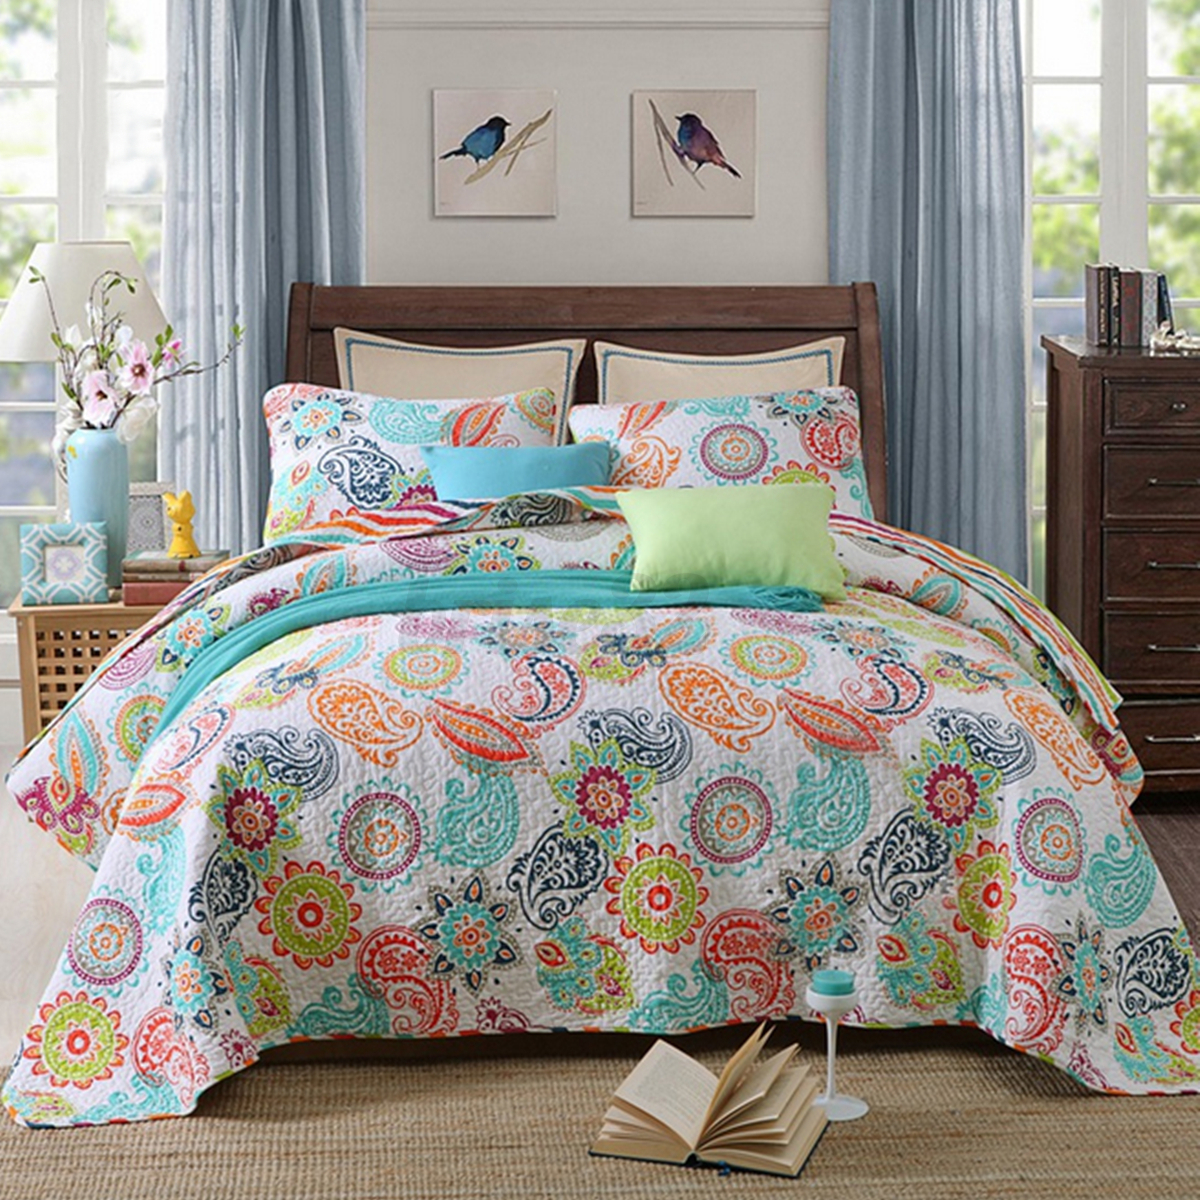 3pcs cotton quilted coverlet bedspread patchwork queen king size paisley set ebay. Black Bedroom Furniture Sets. Home Design Ideas